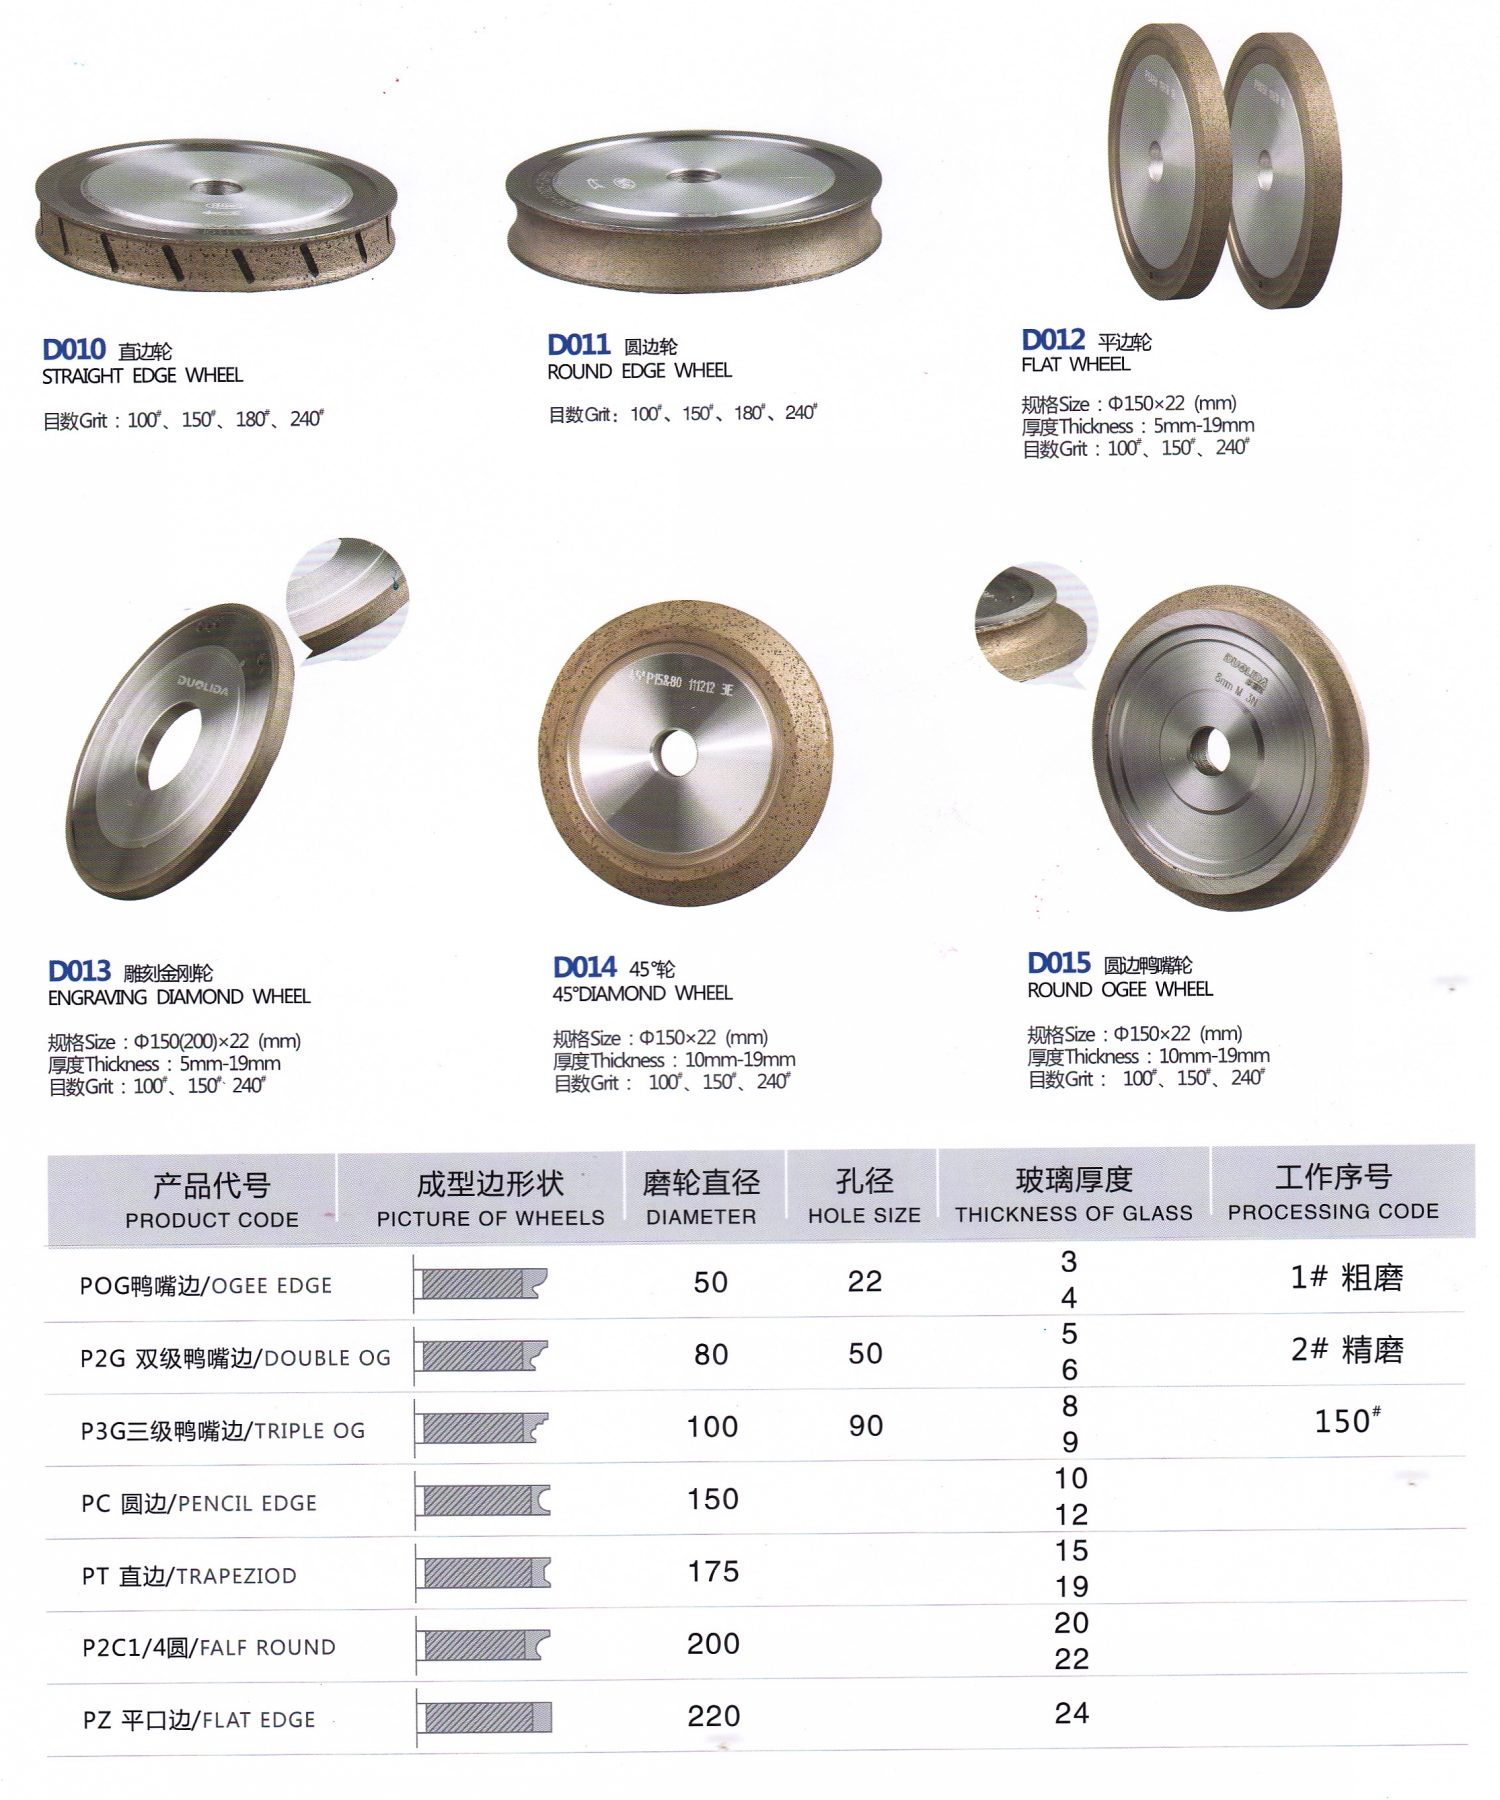 19_Wheels&Accessories for Shape Glass Edging Machine